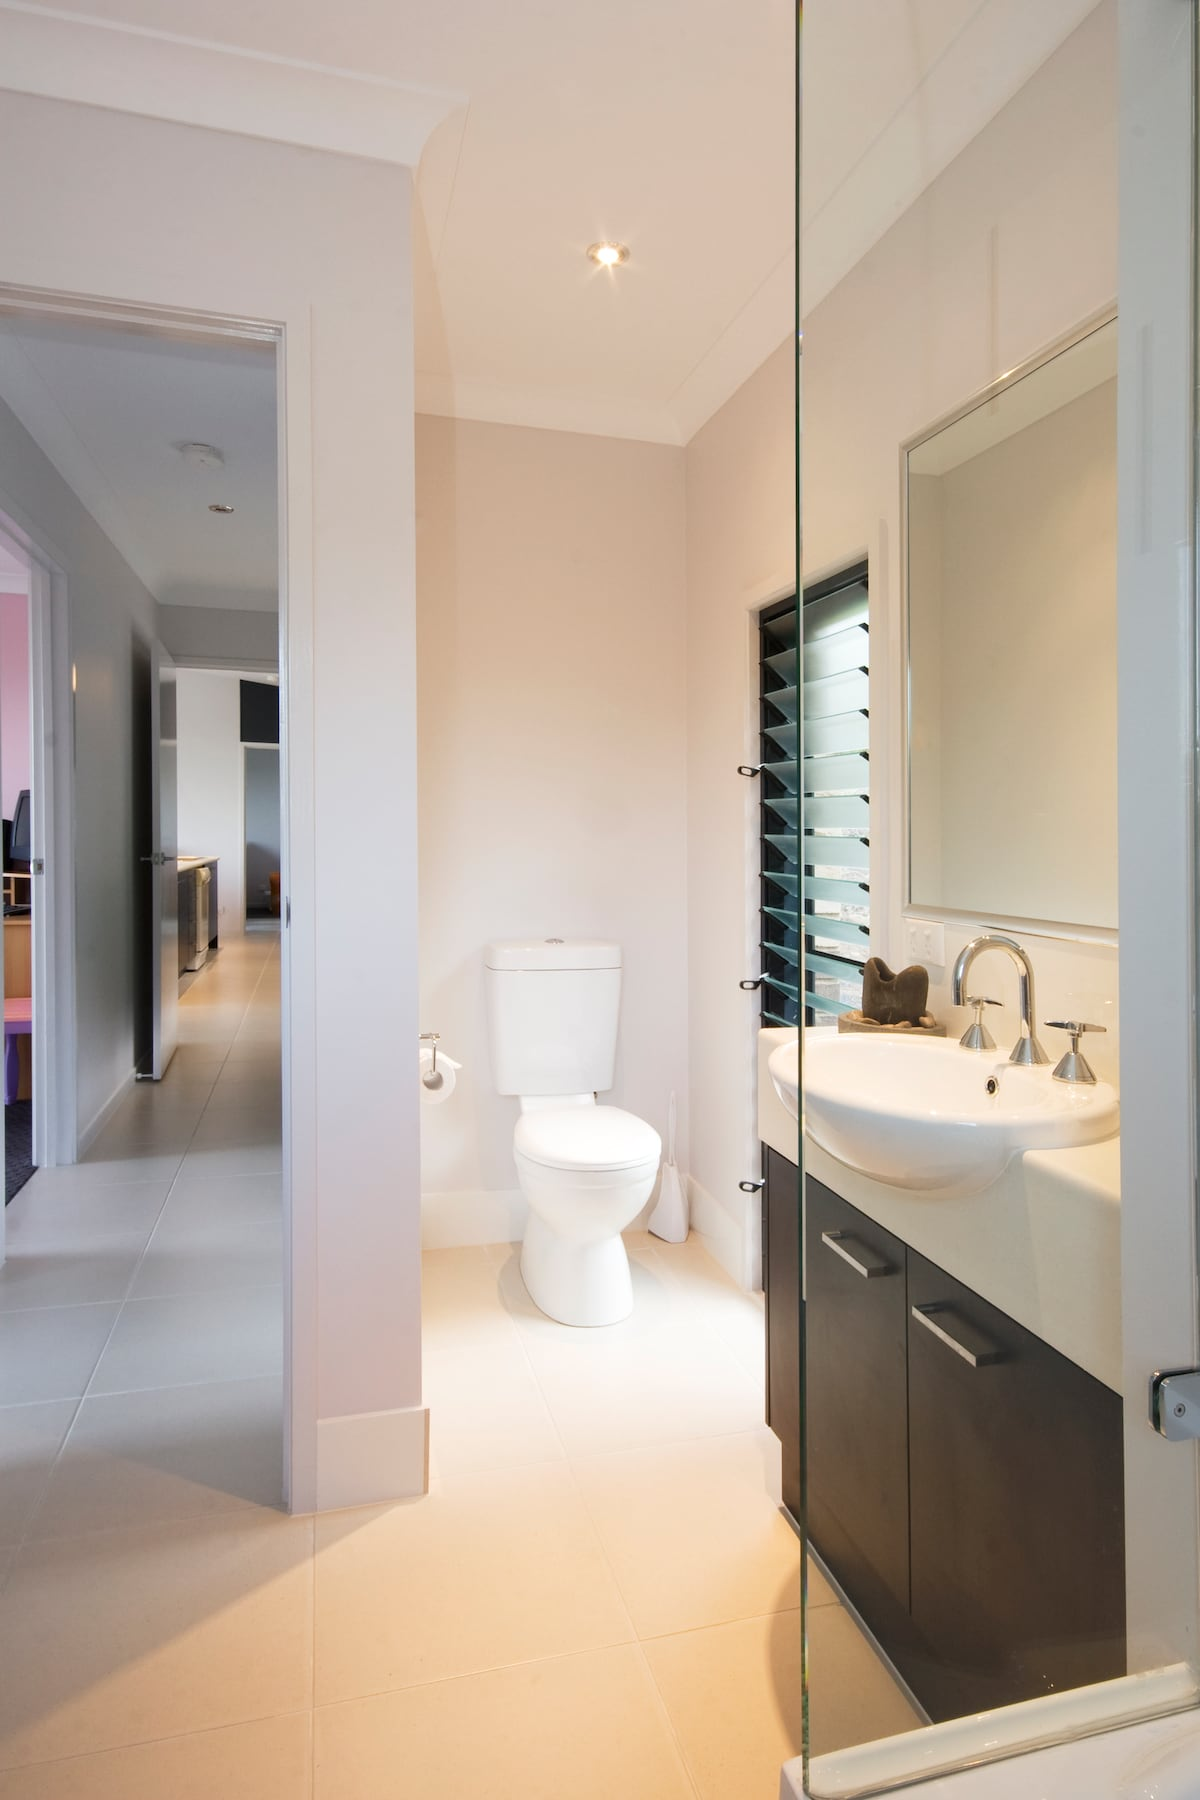 The bathroom that services the two guest bedrooms.